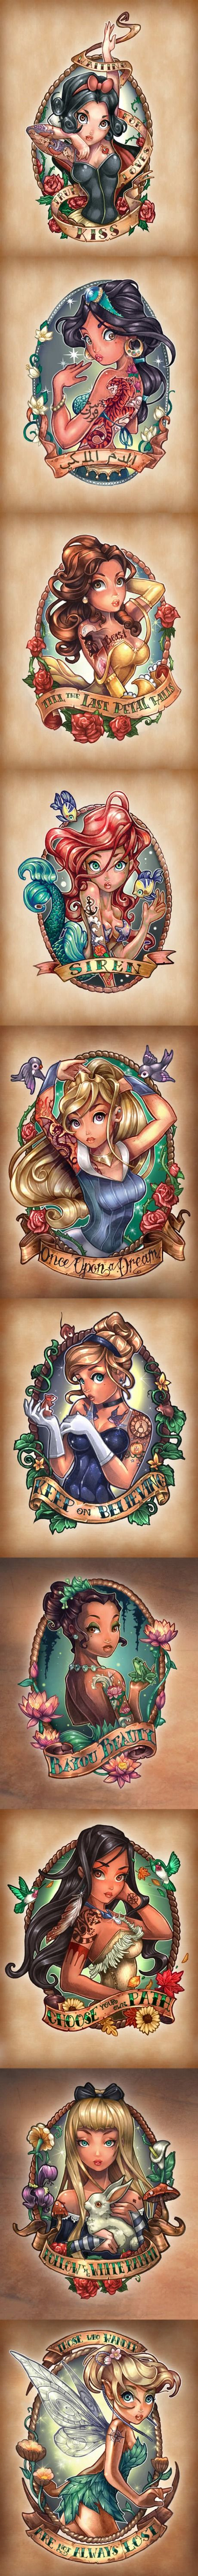 8 Disney Princesses as Tattooed Pinup Girls! ( Alice and Tinkerbell )